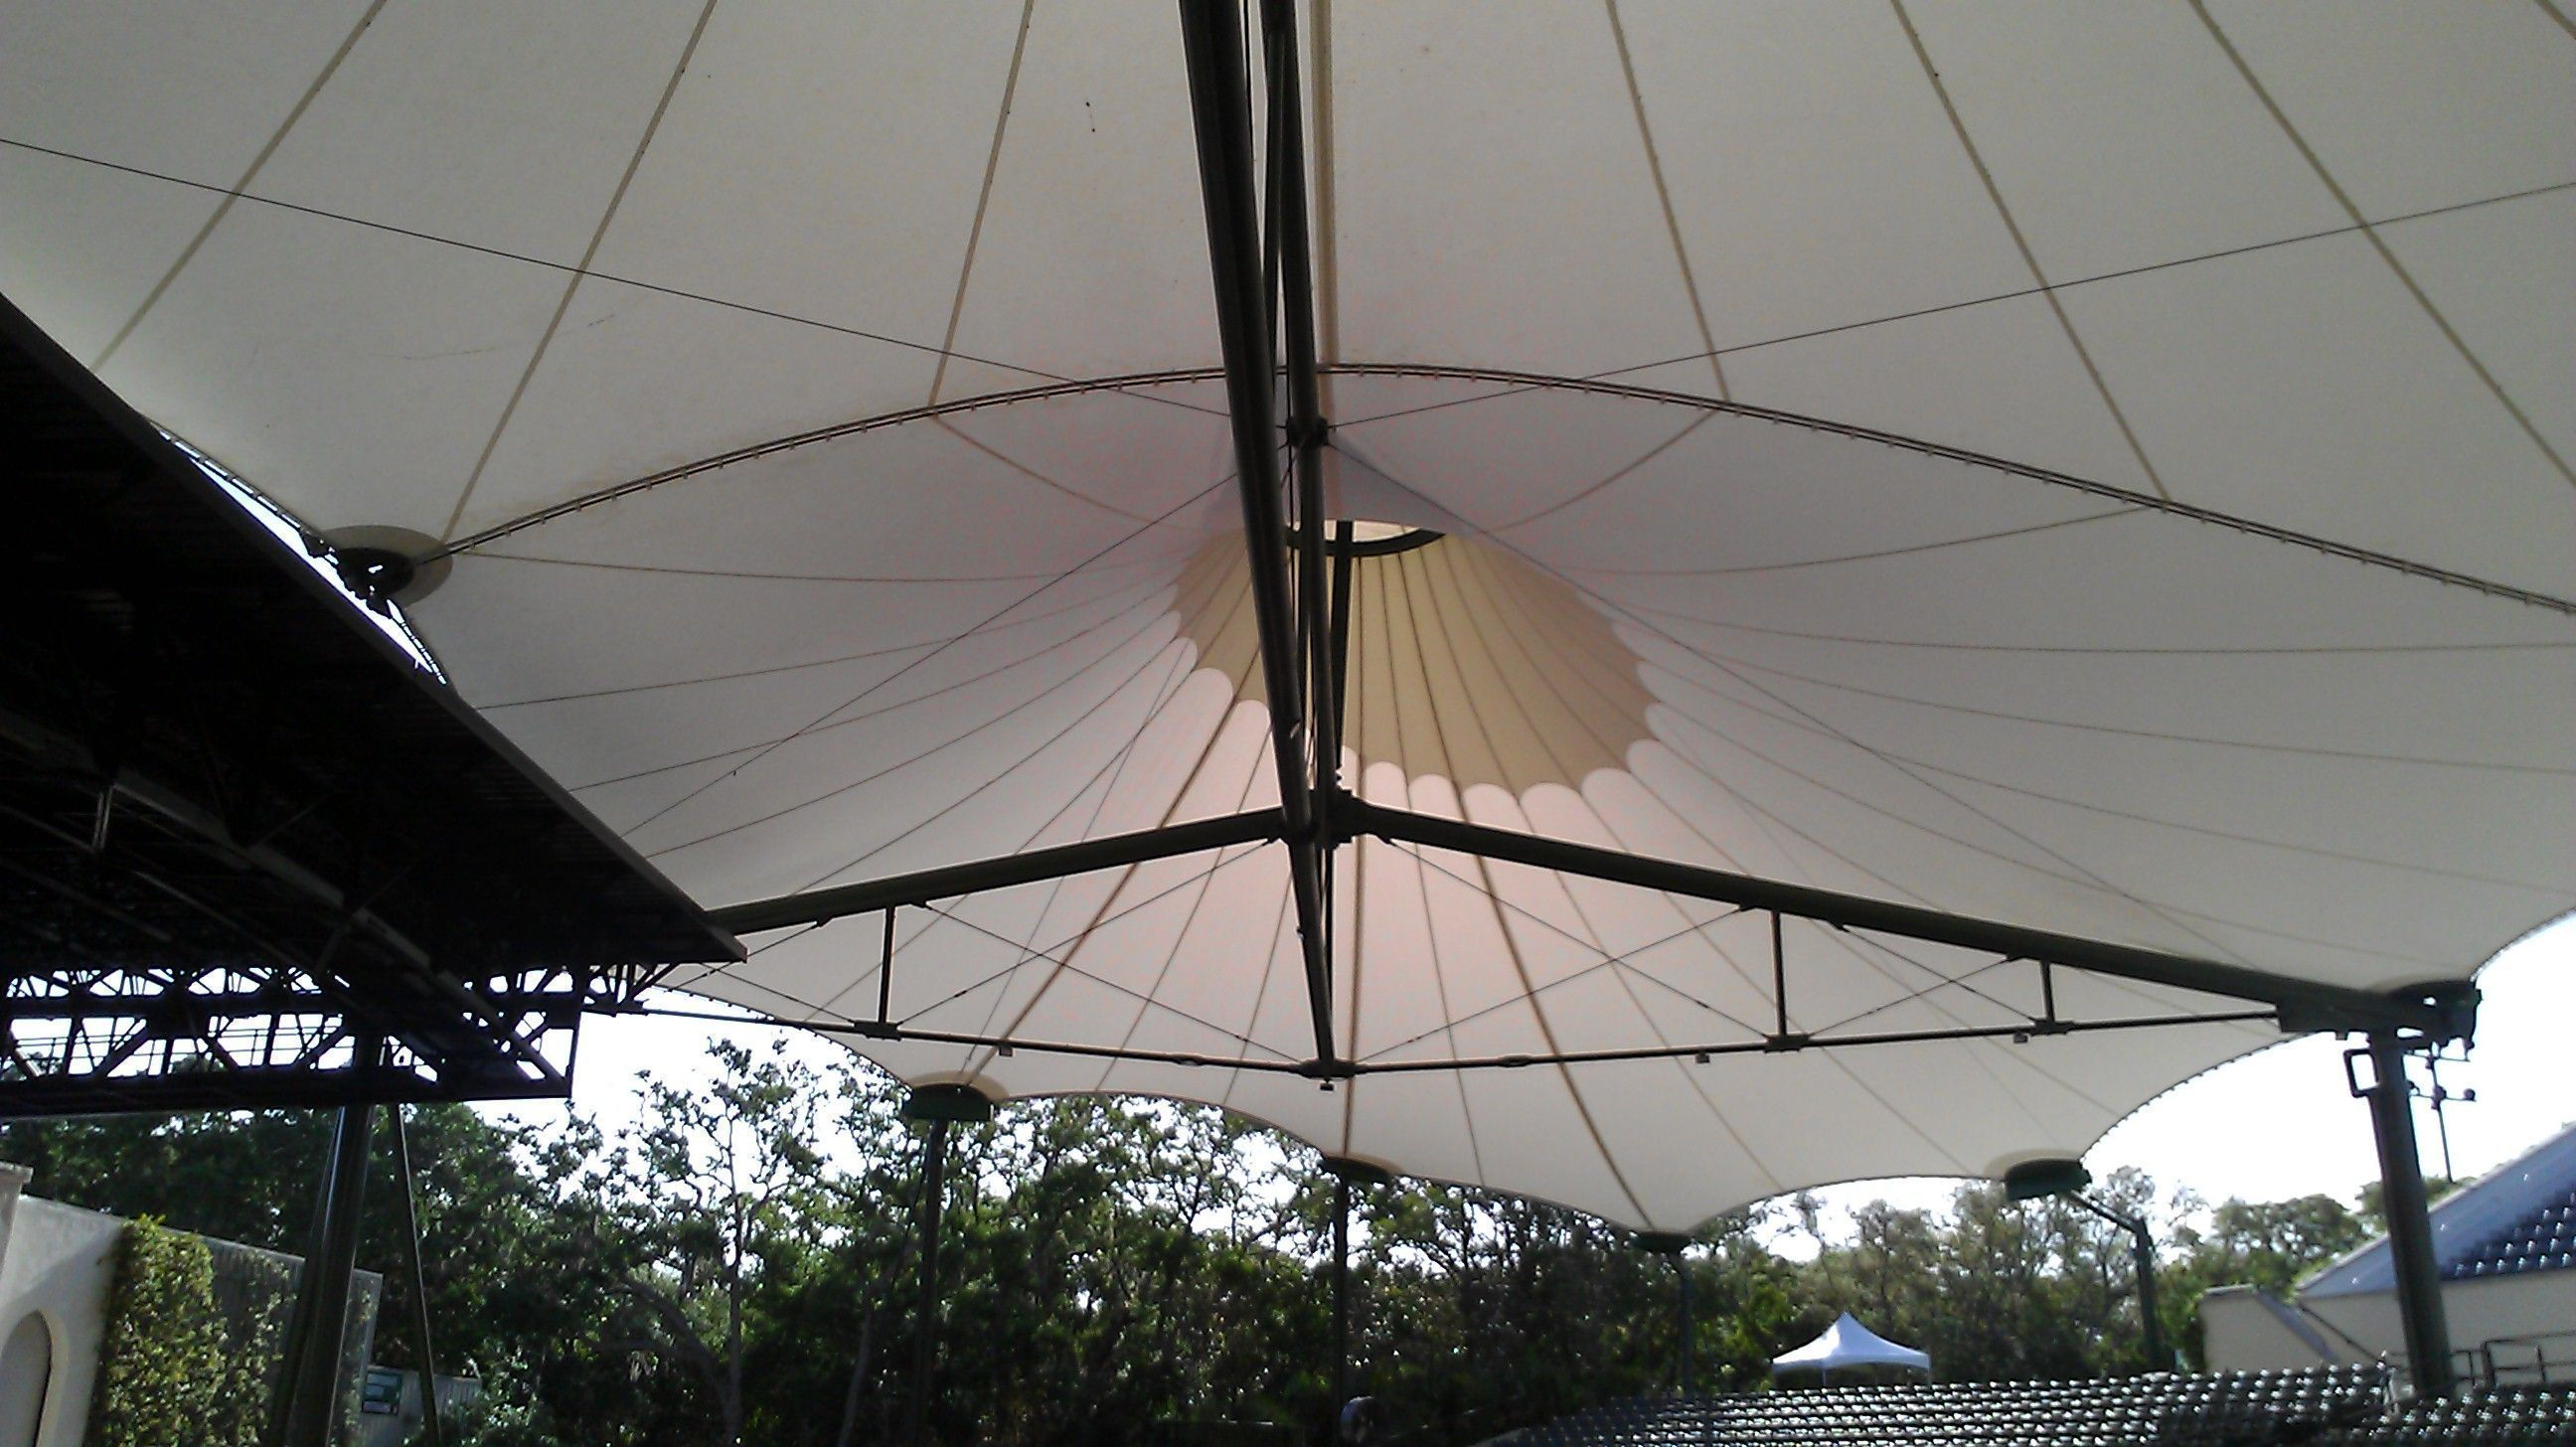 The large umbrella roof protects concert goers from the elements. #largeumbrella The large umbrella roof protects concert goers from the elements. #largeumbrella The large umbrella roof protects concert goers from the elements. #largeumbrella The large umbrella roof protects concert goers from the elements. #largeumbrella The large umbrella roof protects concert goers from the elements. #largeumbrella The large umbrella roof protects concert goers from the elements. #largeumbrella The large umbr #largeumbrella